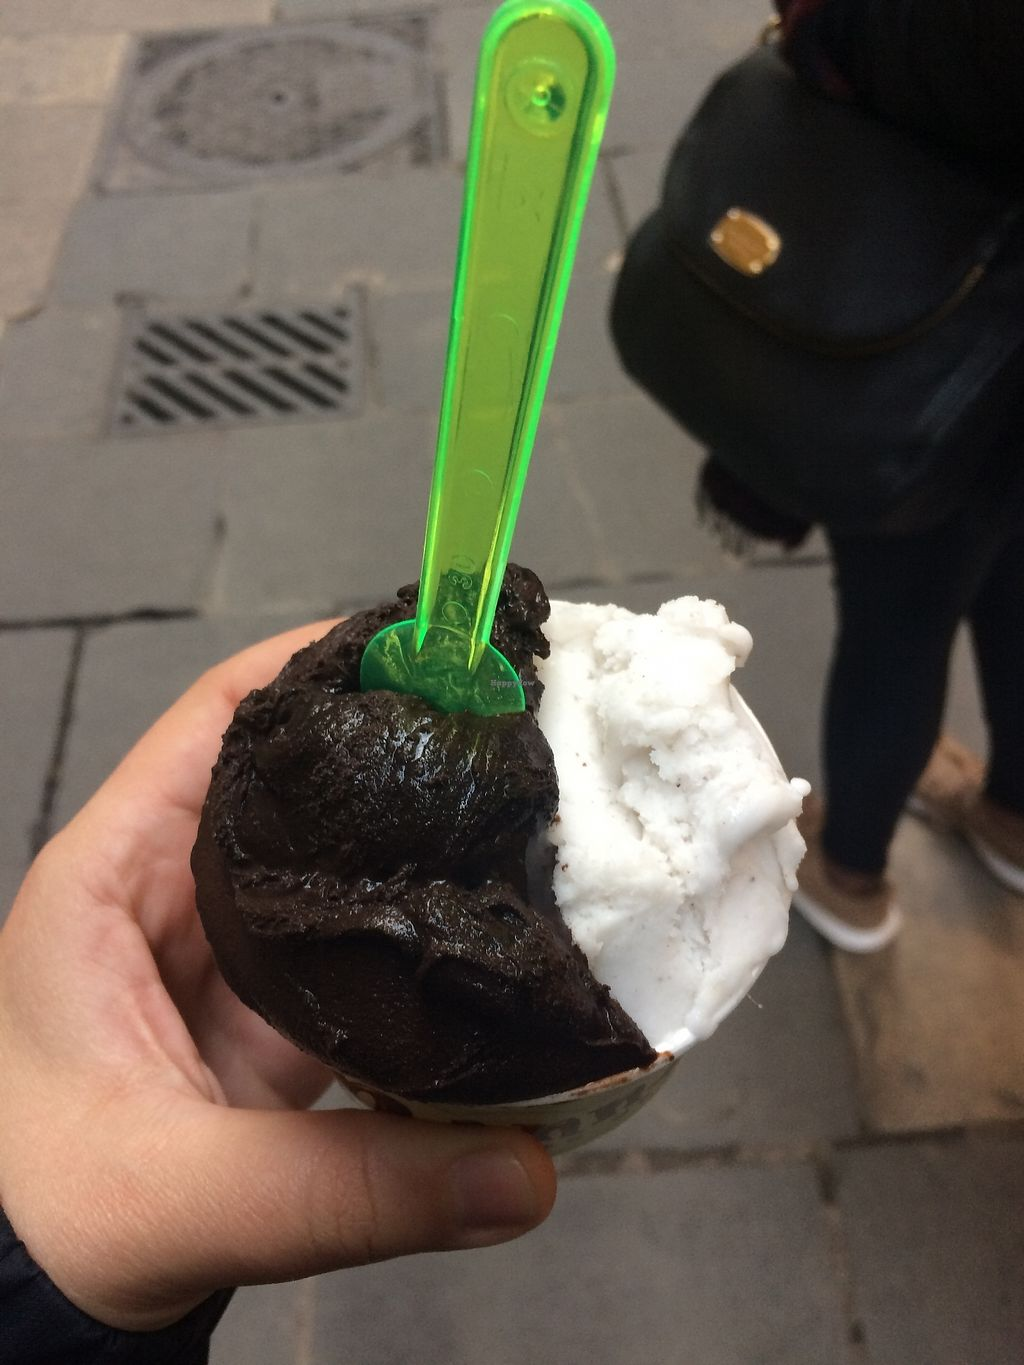 "Photo of Manna Gelats  by <a href=""/members/profile/sabrinajh"">sabrinajh</a> <br/>Left - vegan dark chocolate (amazing and perfect). Right - rice, ginger, cinnamon flavour, good too! <br/> December 31, 2017  - <a href='/contact/abuse/image/80072/341441'>Report</a>"